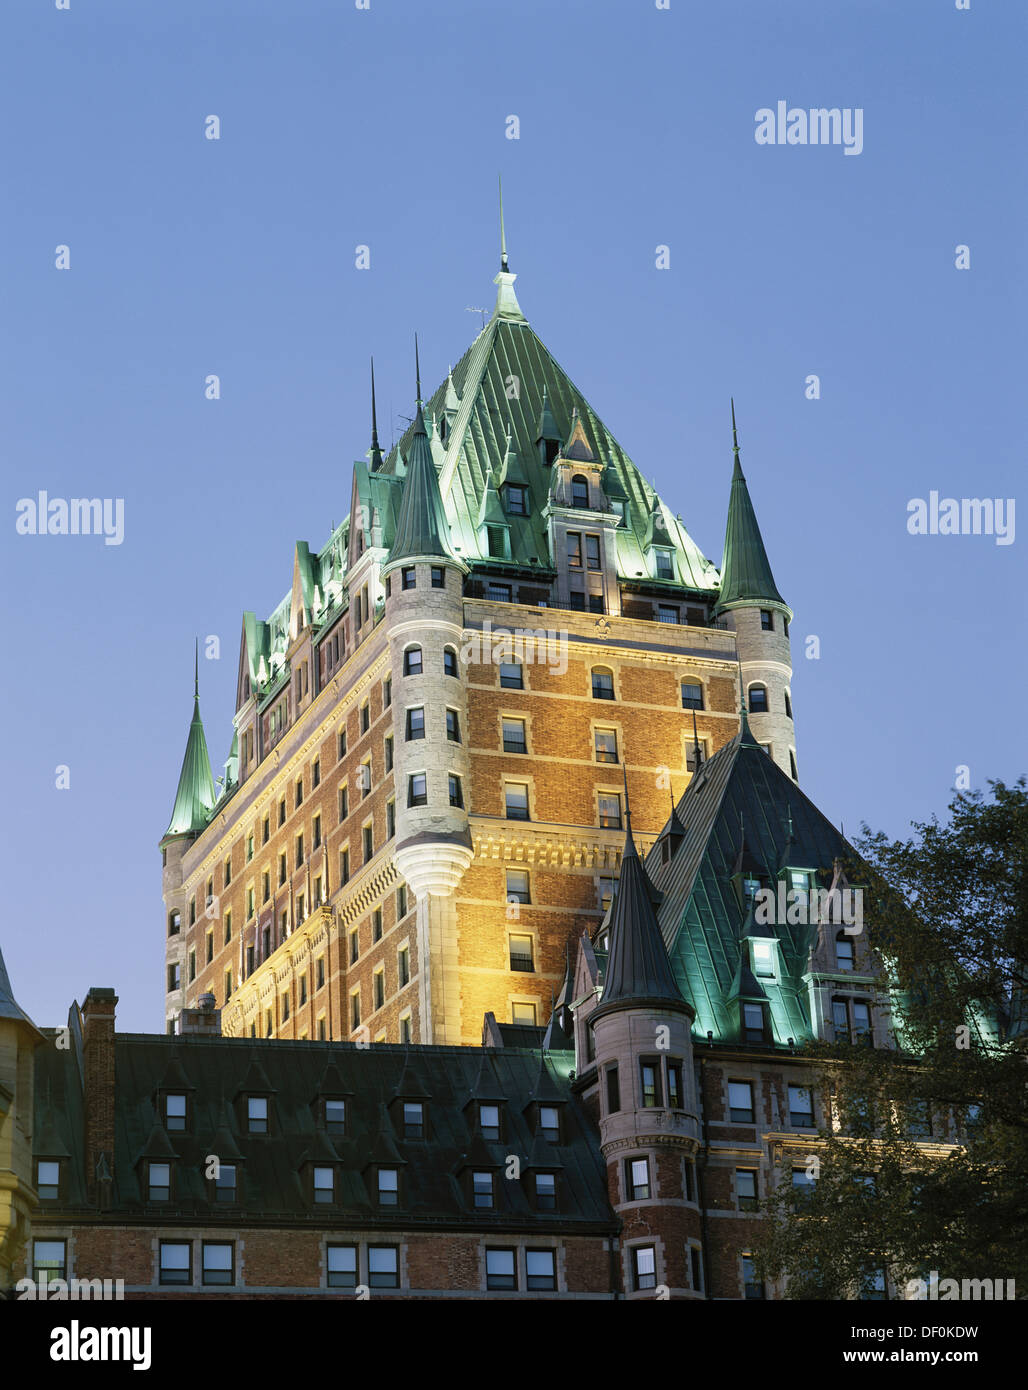 Canada, Quebec, Quebec City, Chateau Frontenac roof detail. - Stock Image